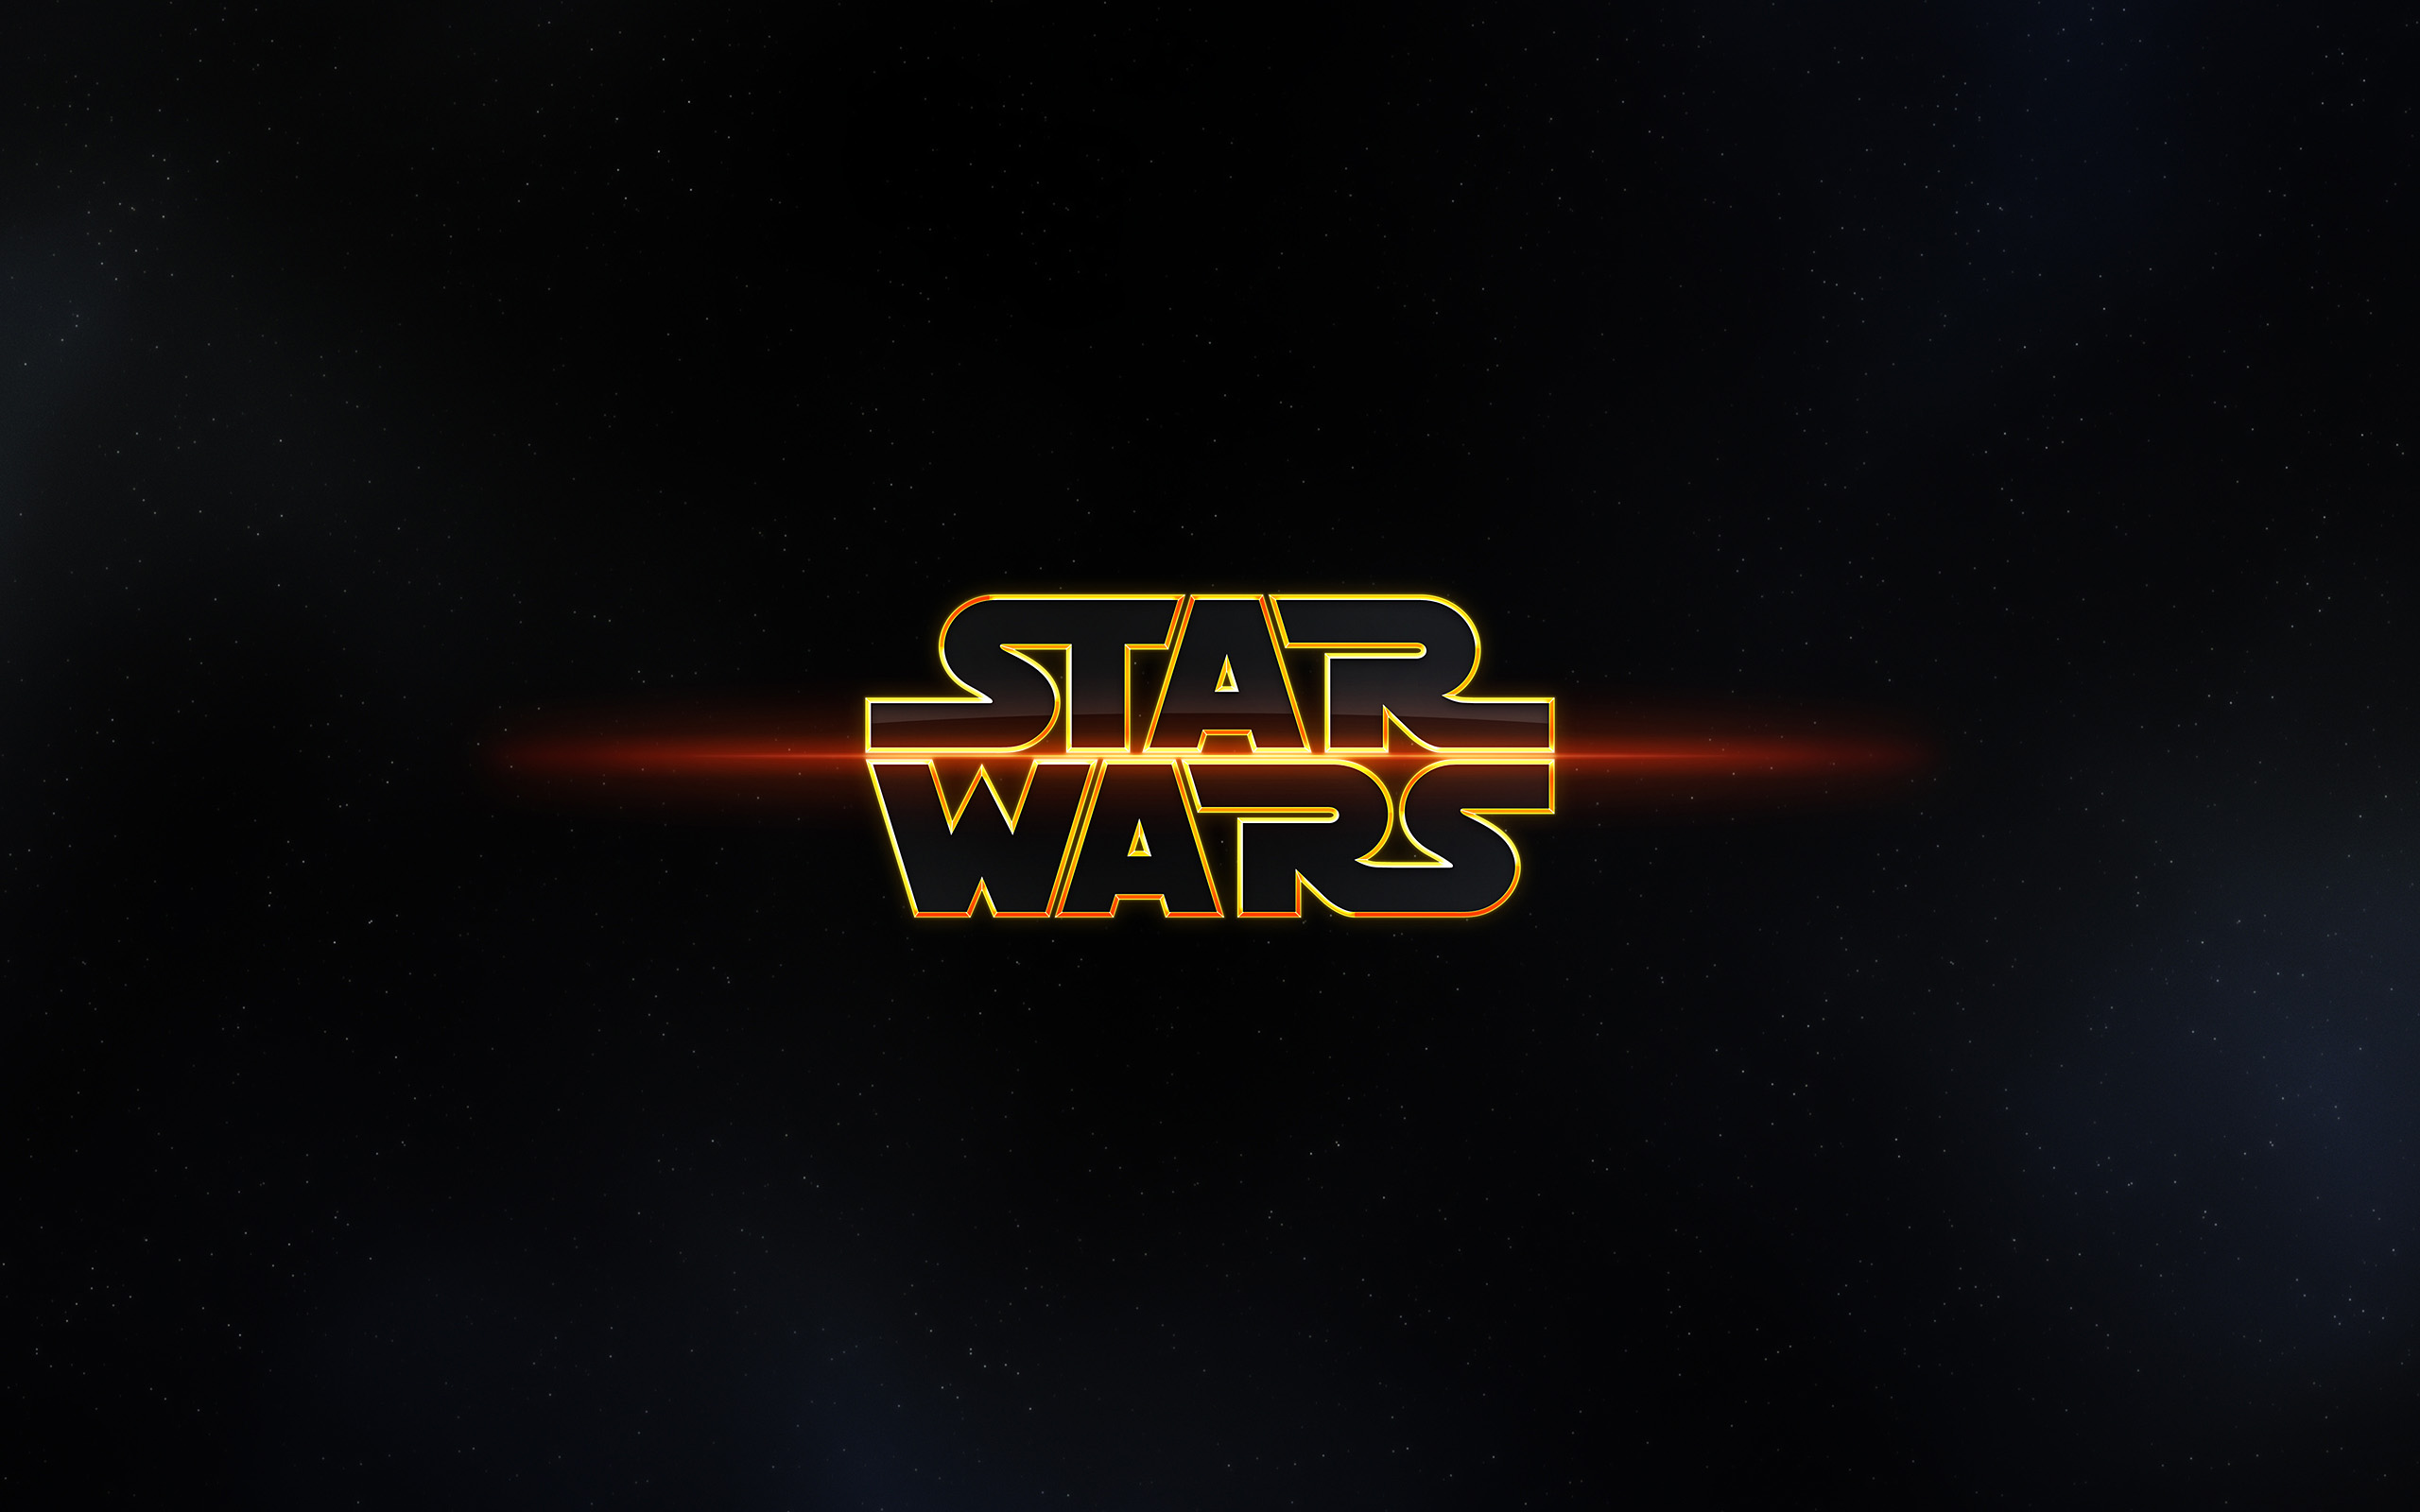 Epic Star Wars HD Wallpapers Epic Star Wars Desktop Wallpapers Epic 2560x1600